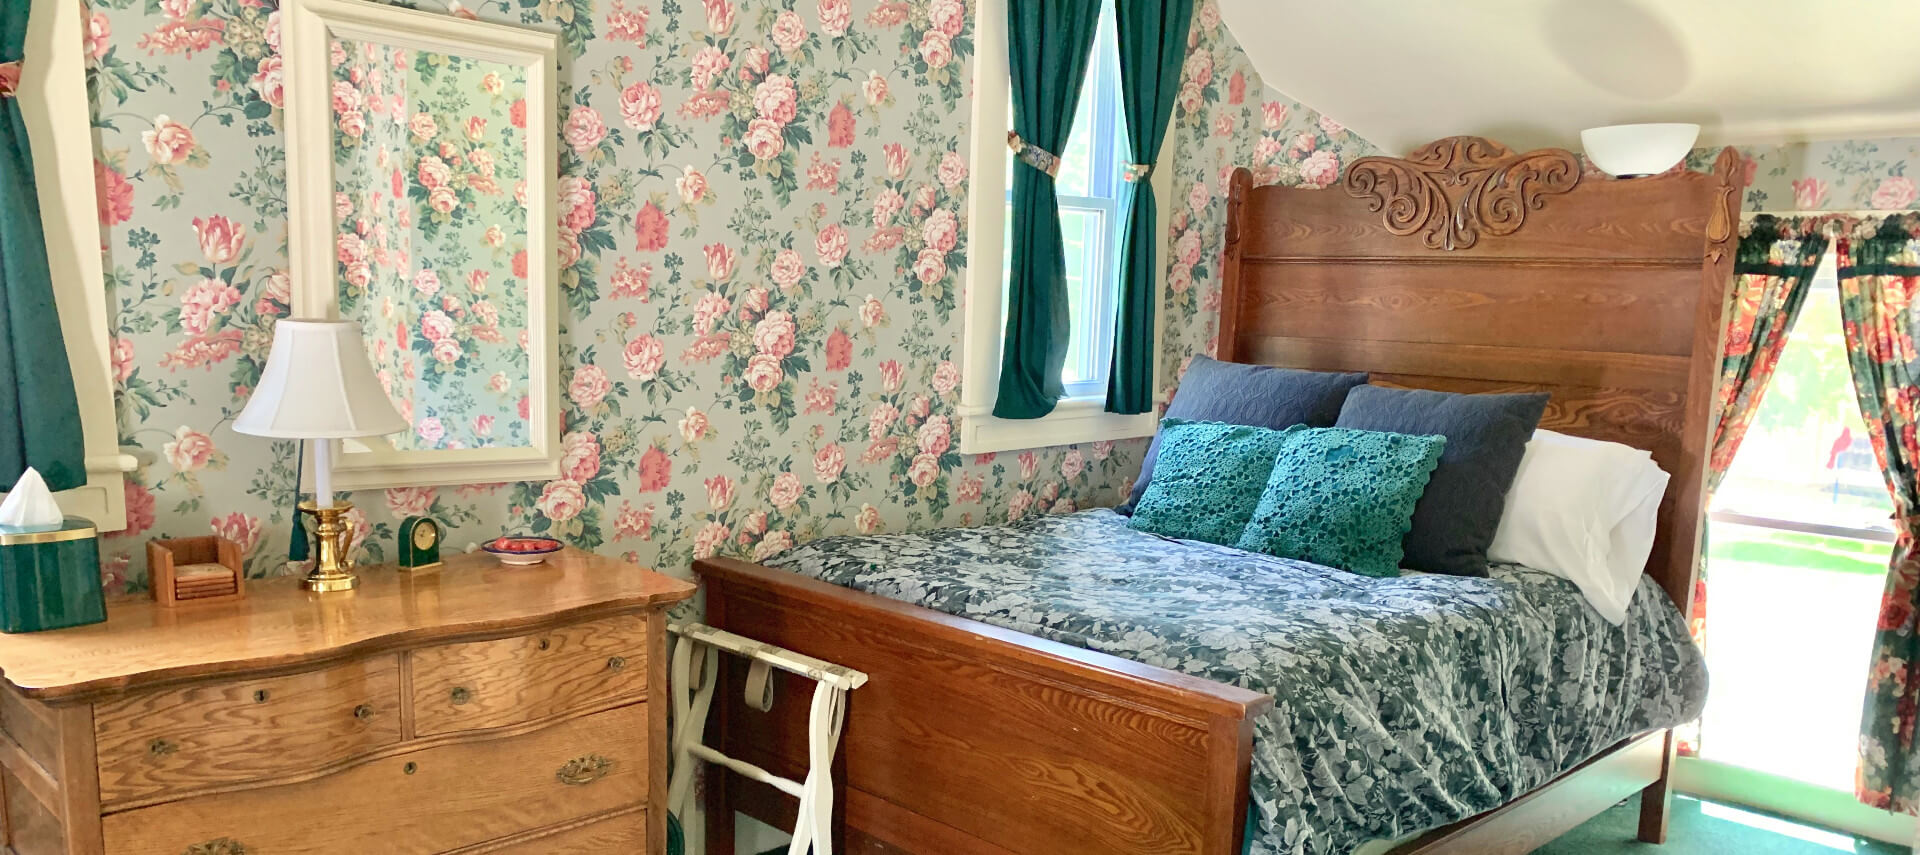 Wooden double bed made up in green in a bedroom with a dresser and green and roses wallpaper.